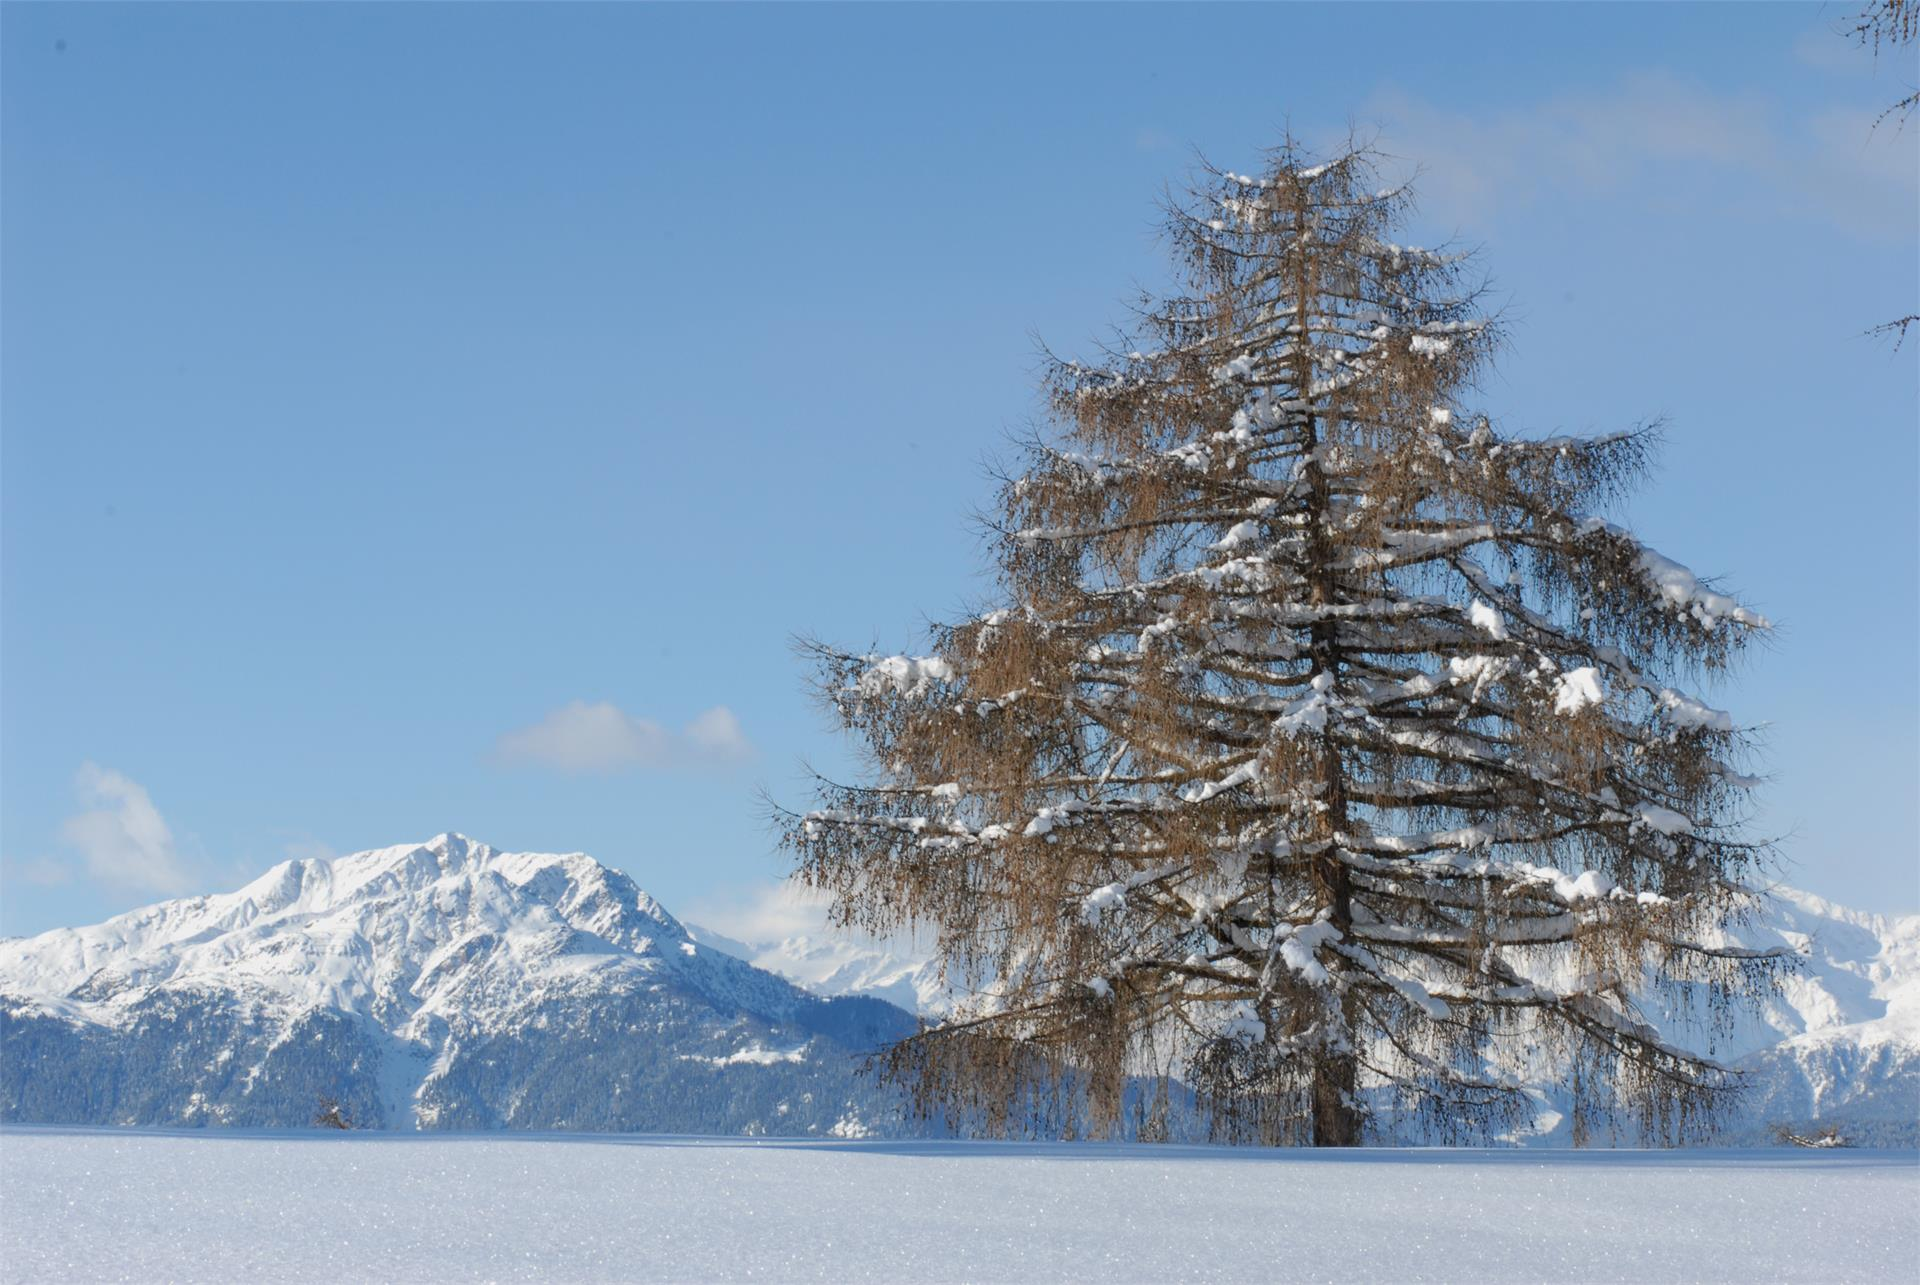 Excursion with snowshoes: Tomanegger - Salten